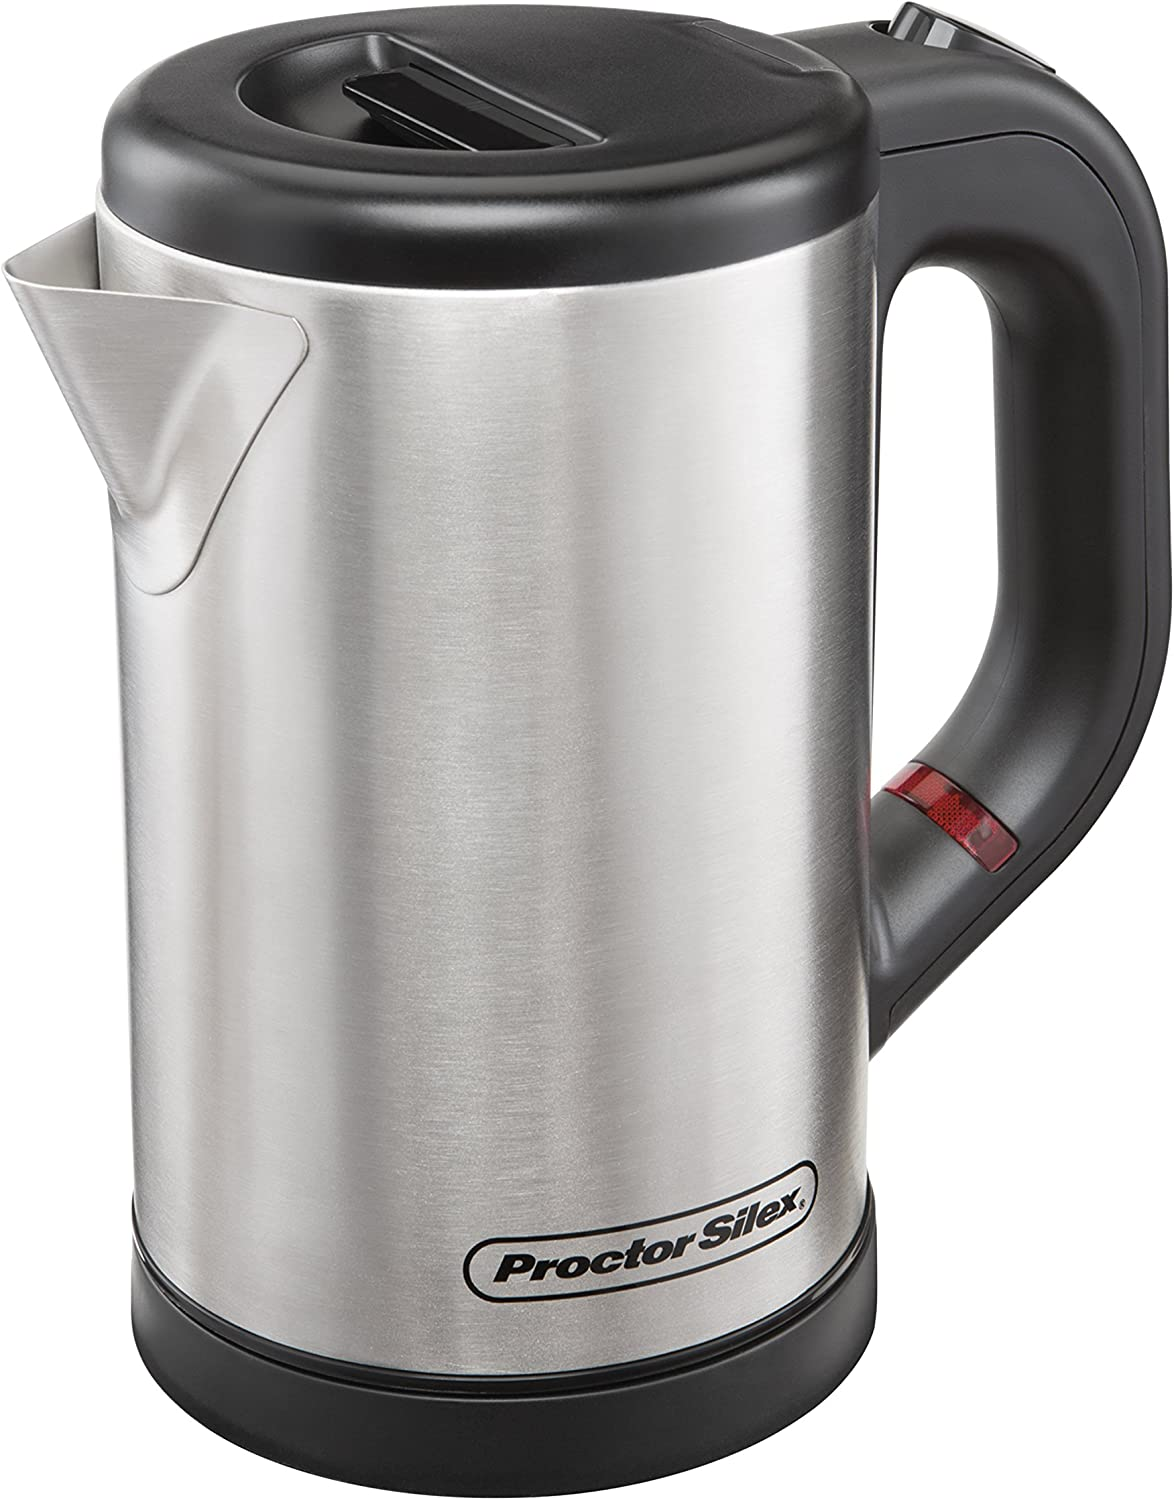 Proctor Silex Compact Electric Kettle for Tea and Hot Water, Cordless, Auto-Shutoff and Boil-Dry Protection, Stainless Steel 40940 ,